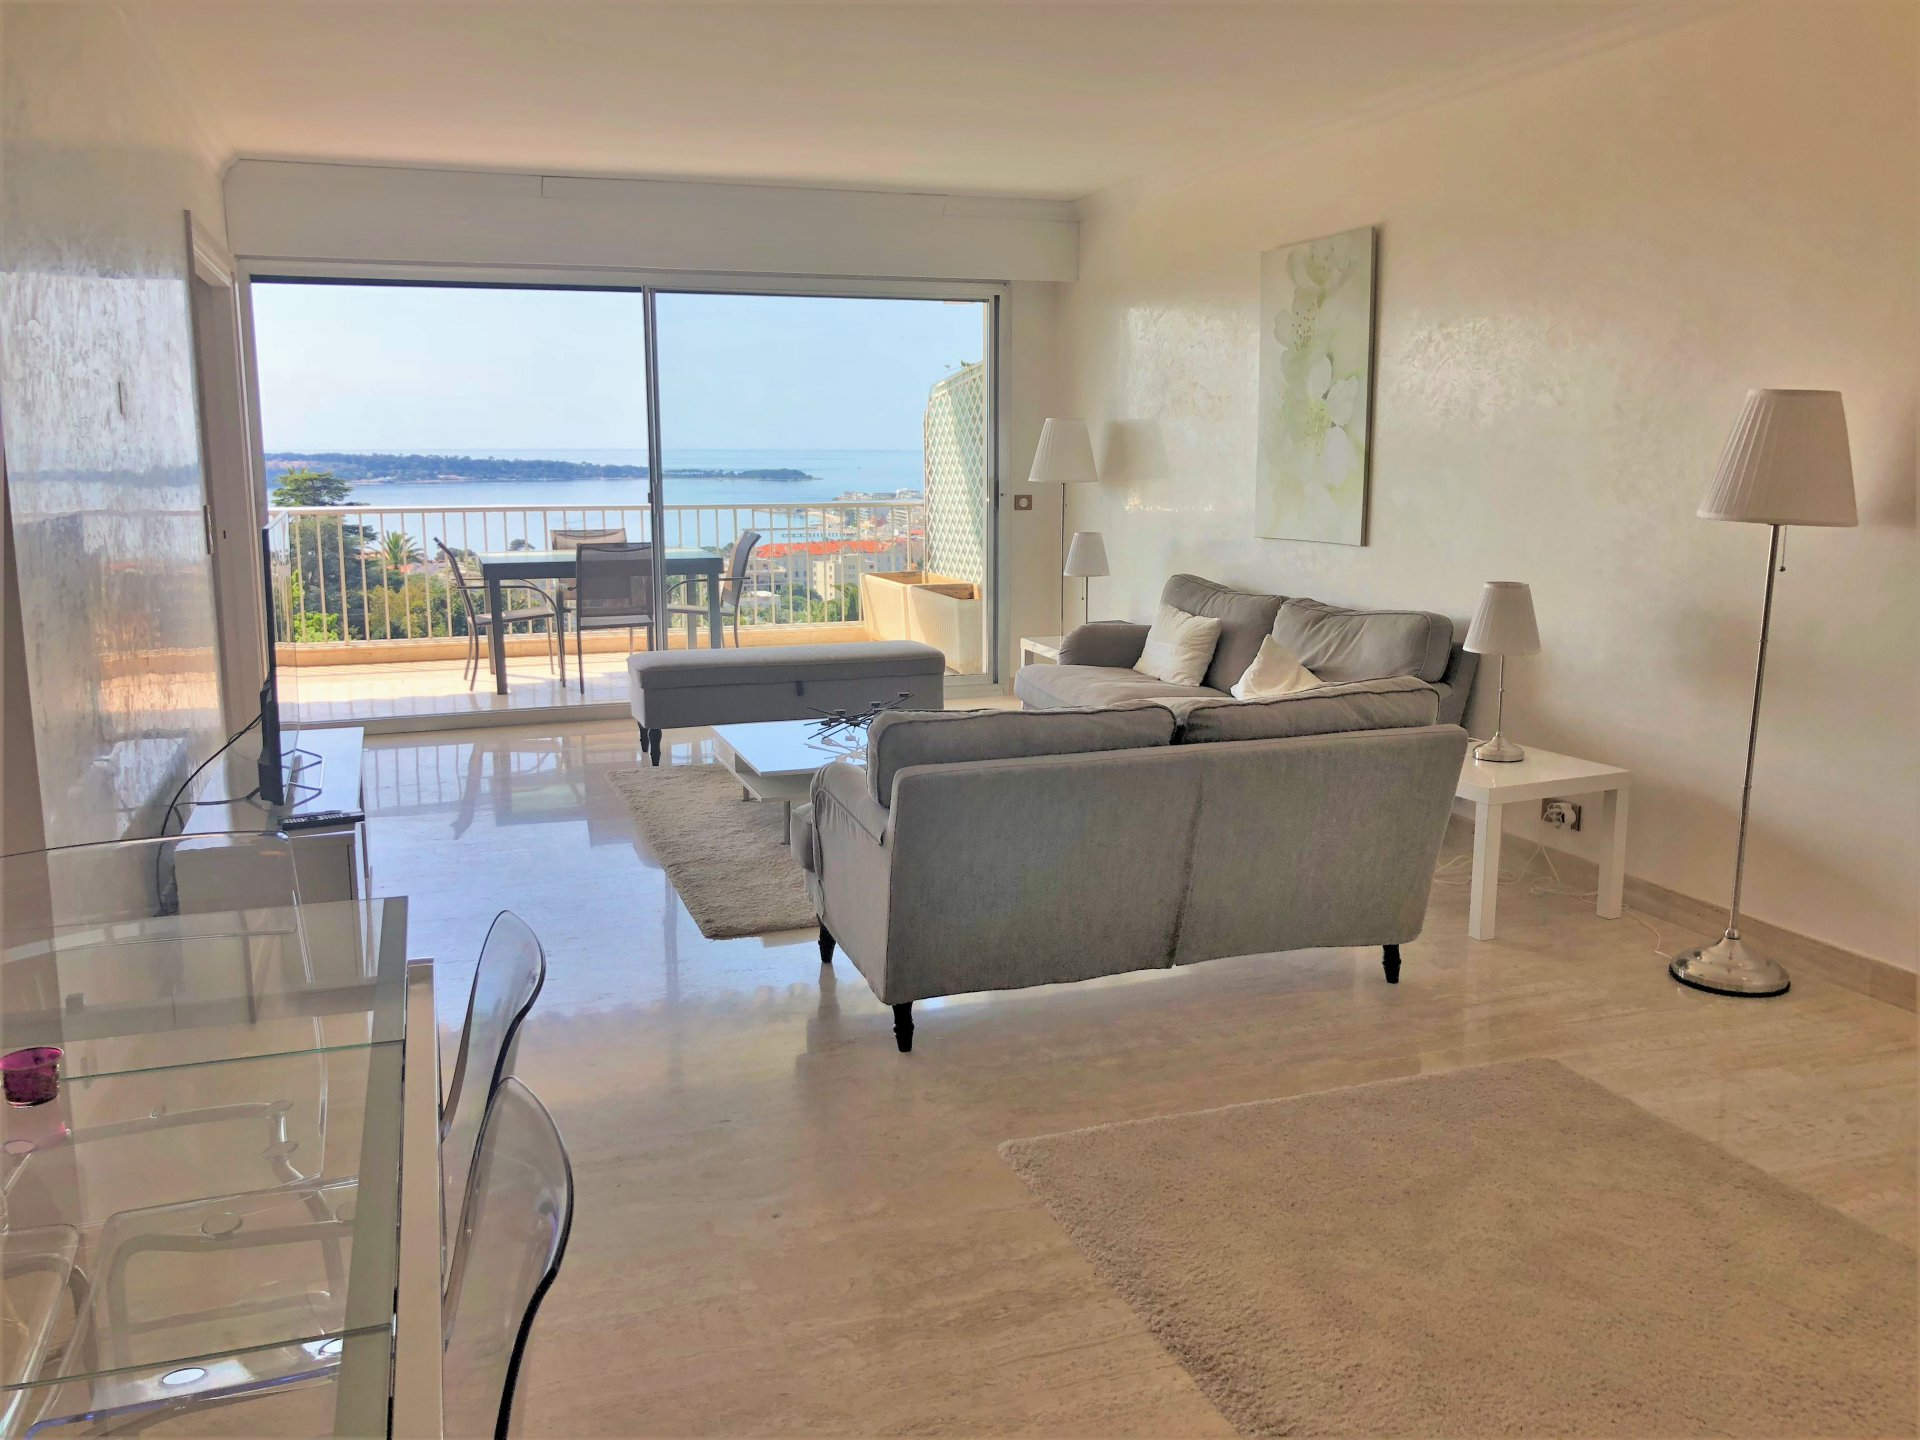 CALIFORNIA 4P 120 M² + 20M² Ter.PANORAMIC SEA VIEW